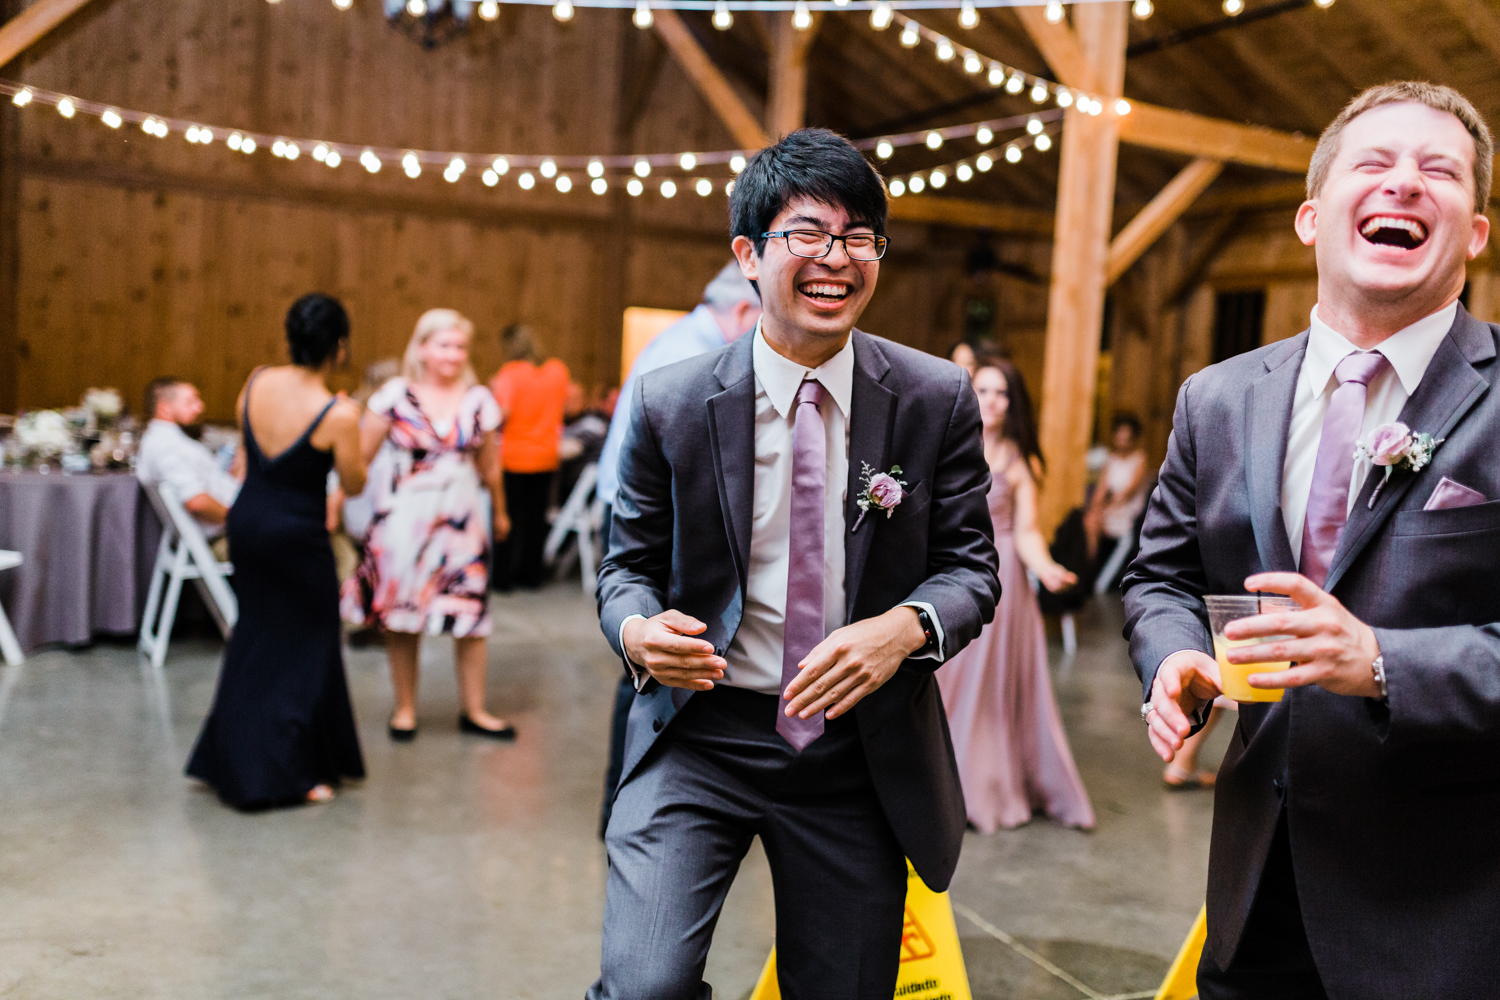 groomsman-dancing-reception.jpg